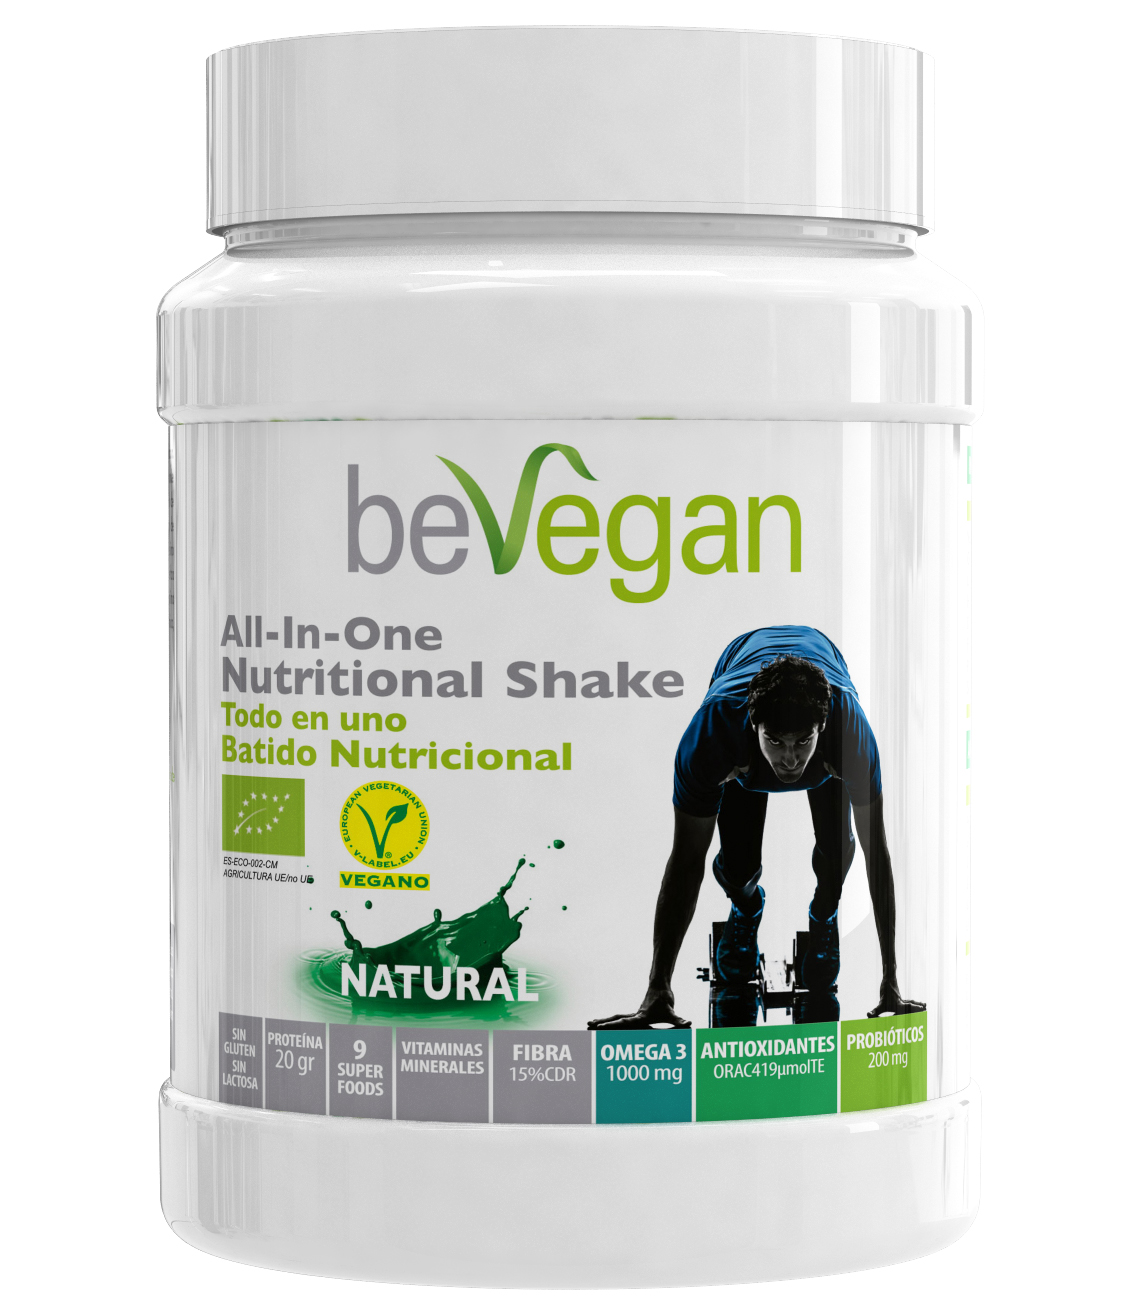 BEVEGAN ALL IN ONE NATURAL NUTRICIONAL SHAKE 600GR en Biovegalia